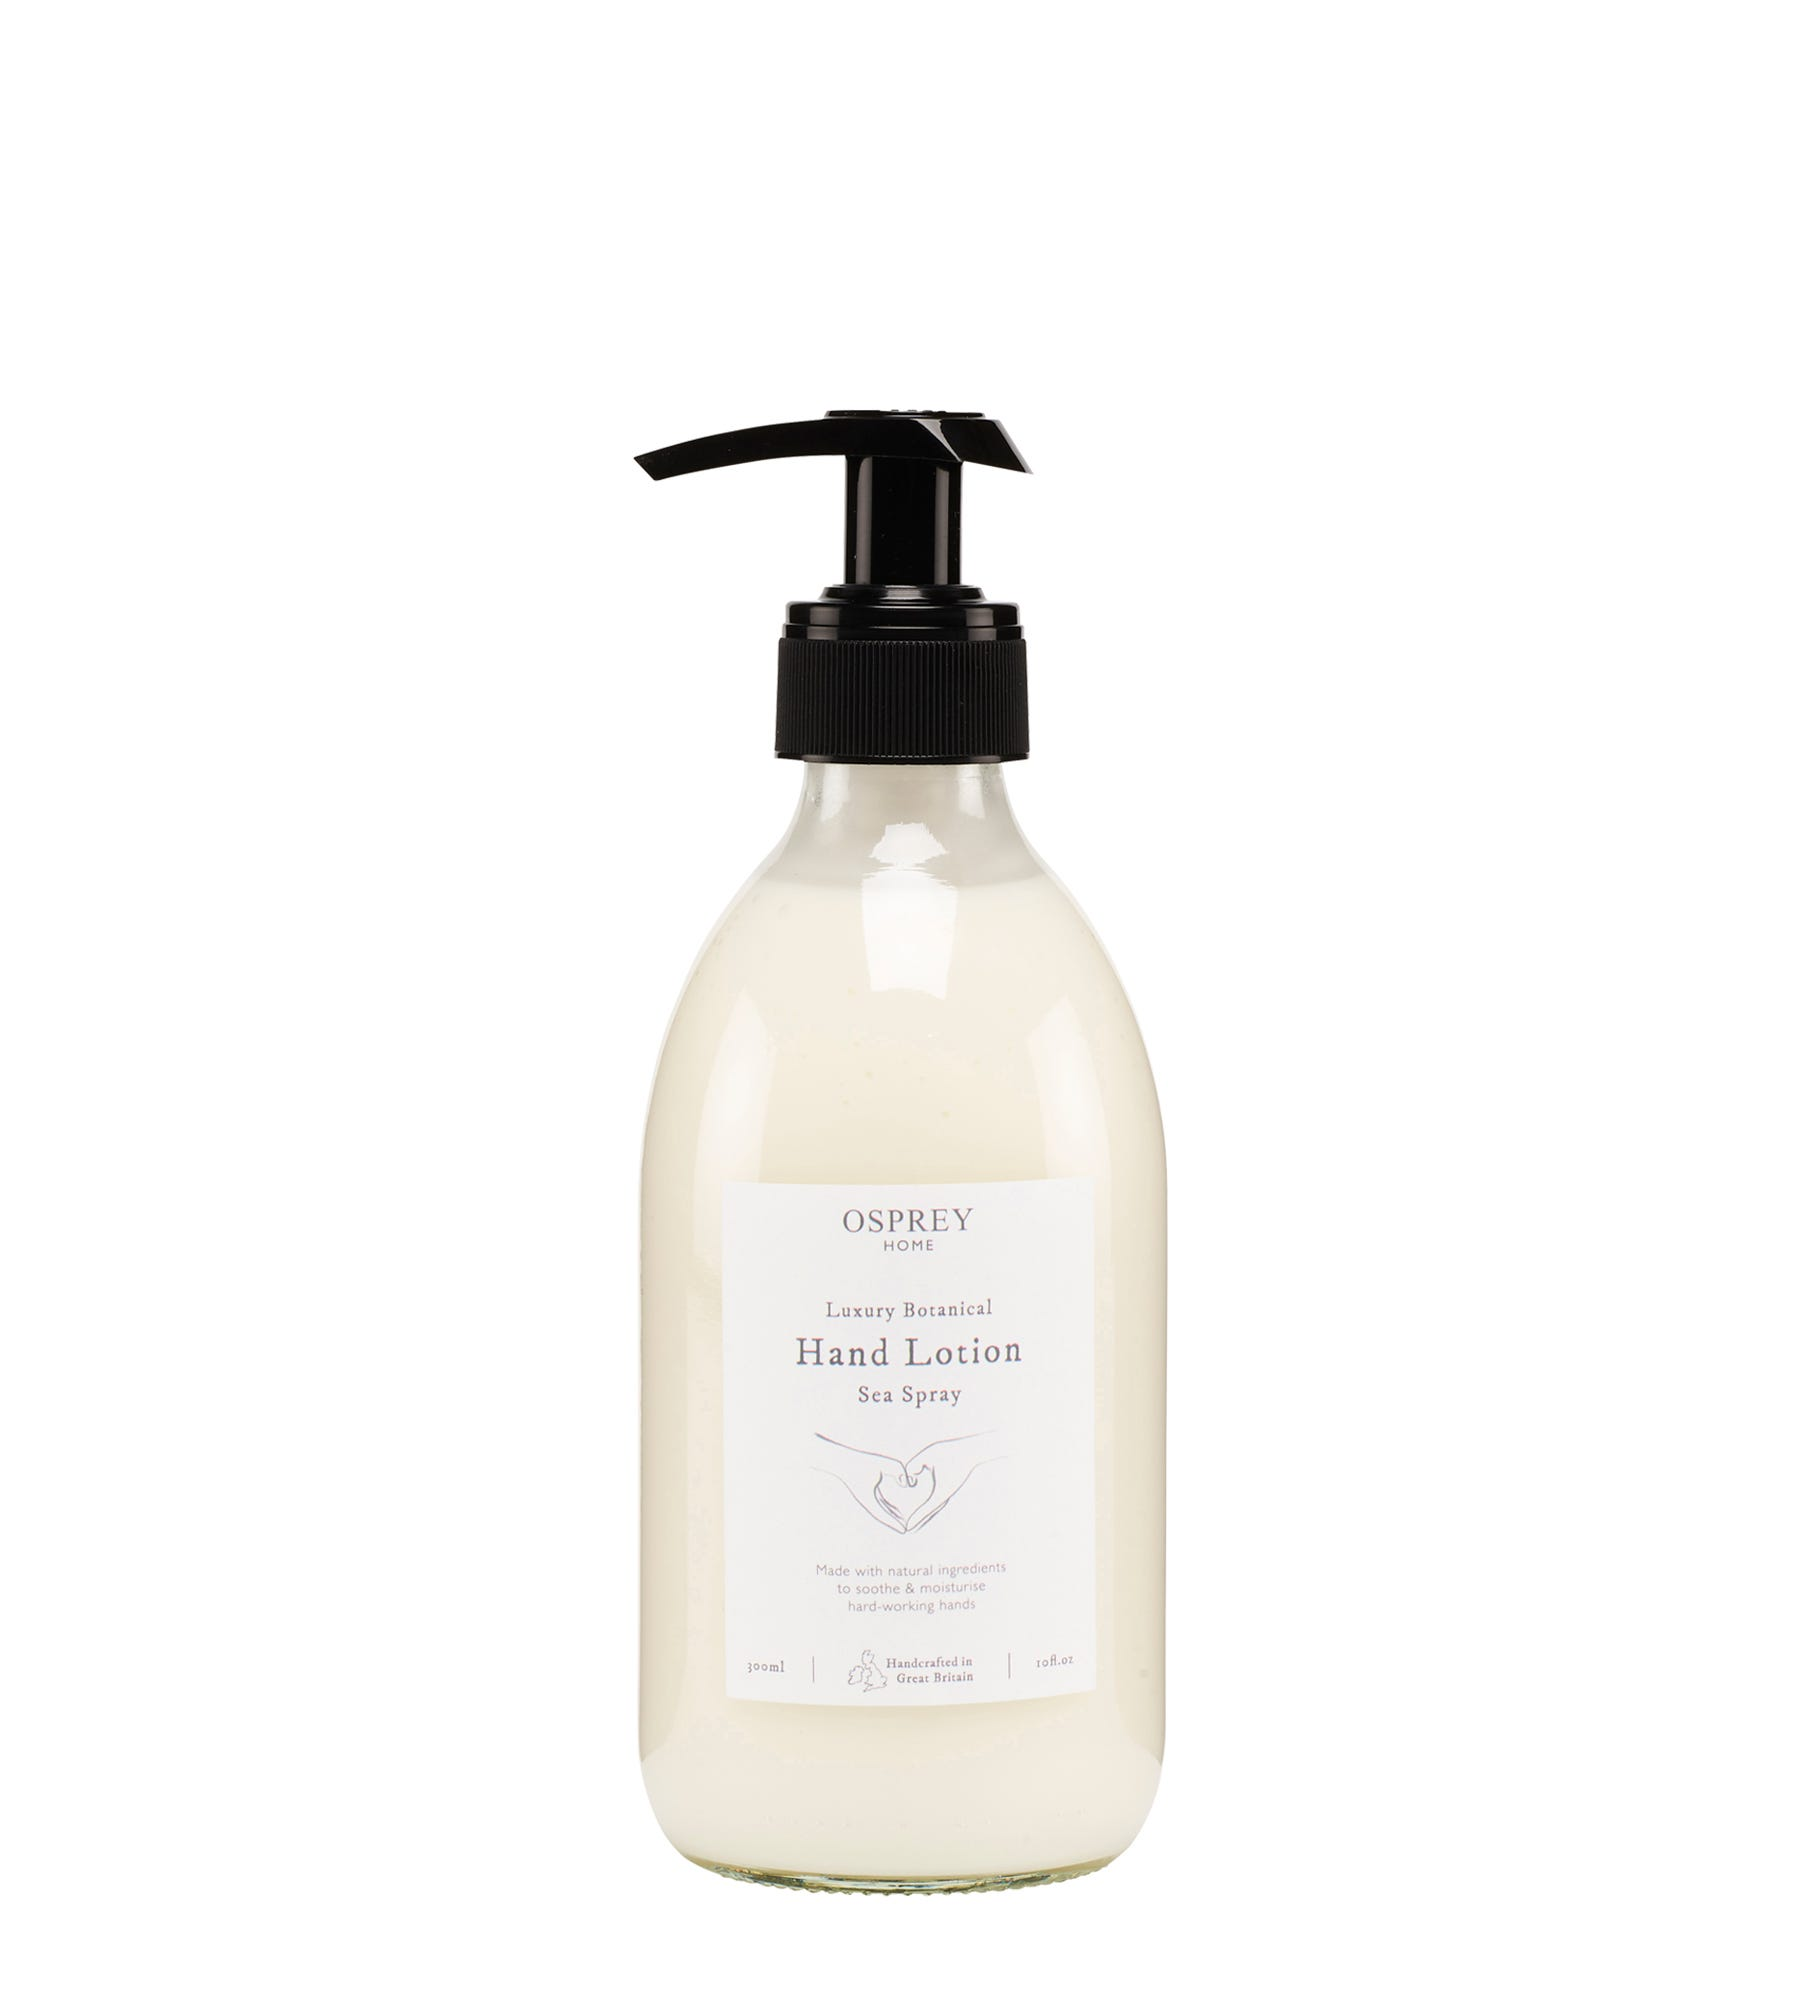 An image of Luxury Botanical Hand Lotion 300ml Glass